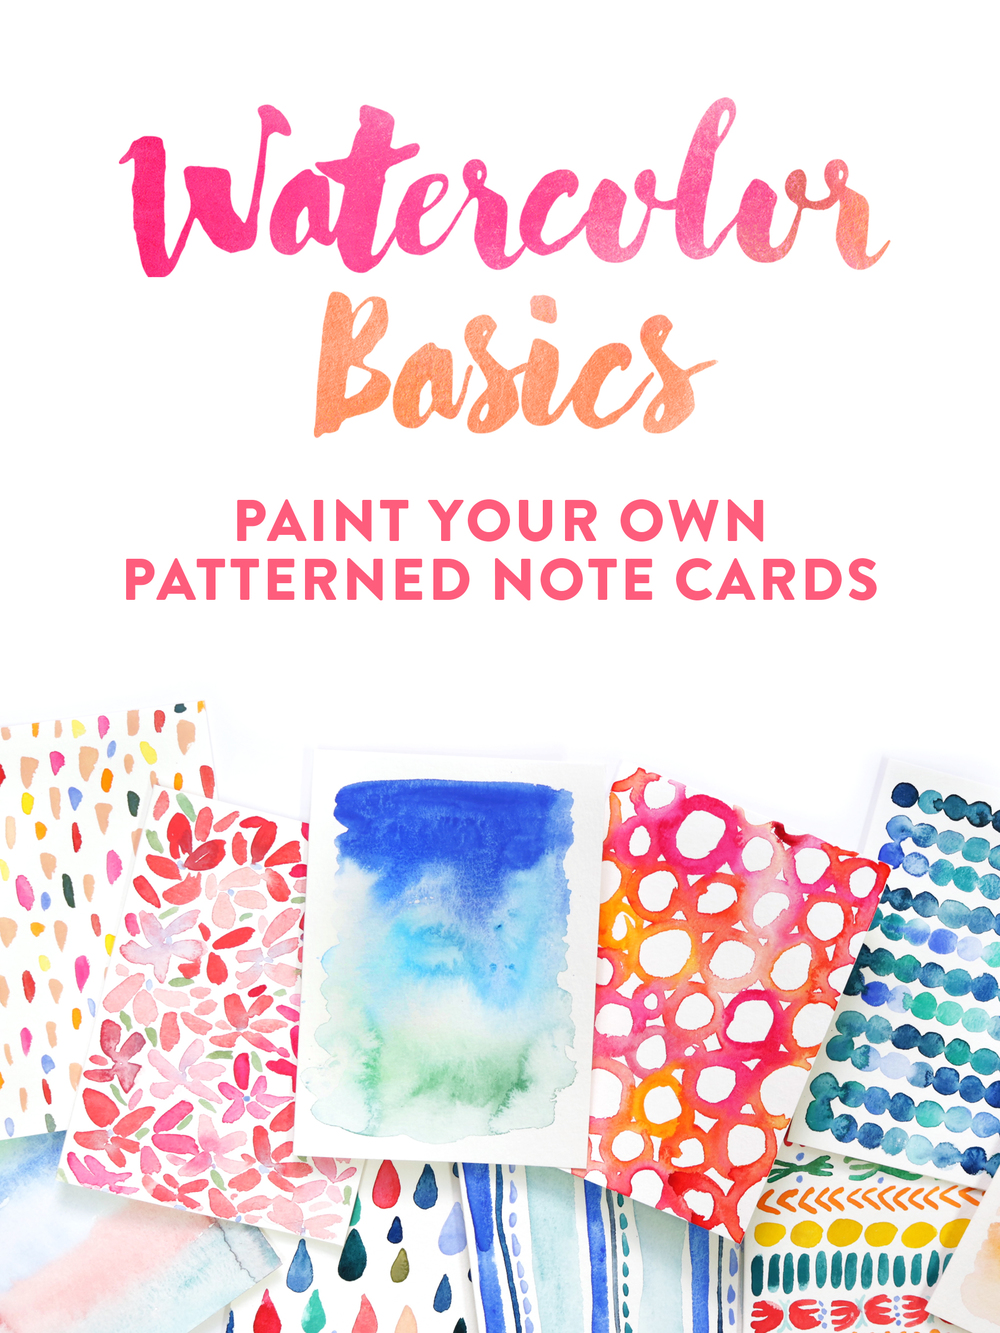 Watercolor Basics: Paint Your on Patterned Note Cards Skillshare class by Juliet Meeks